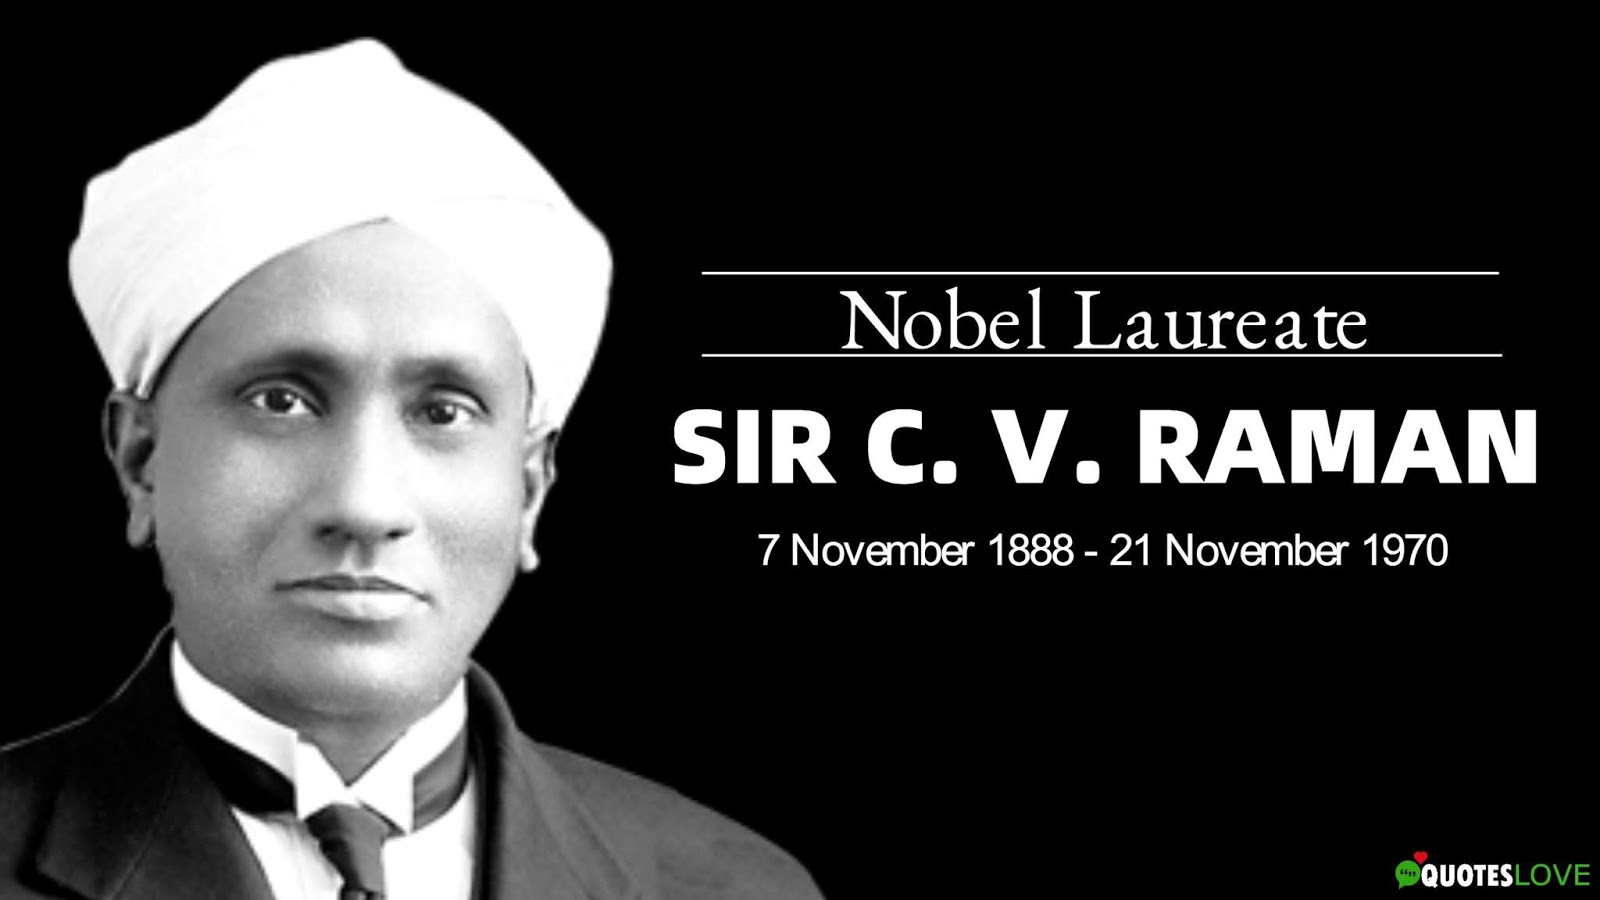 Best 10 C. V. Raman Quotes For National Science Day